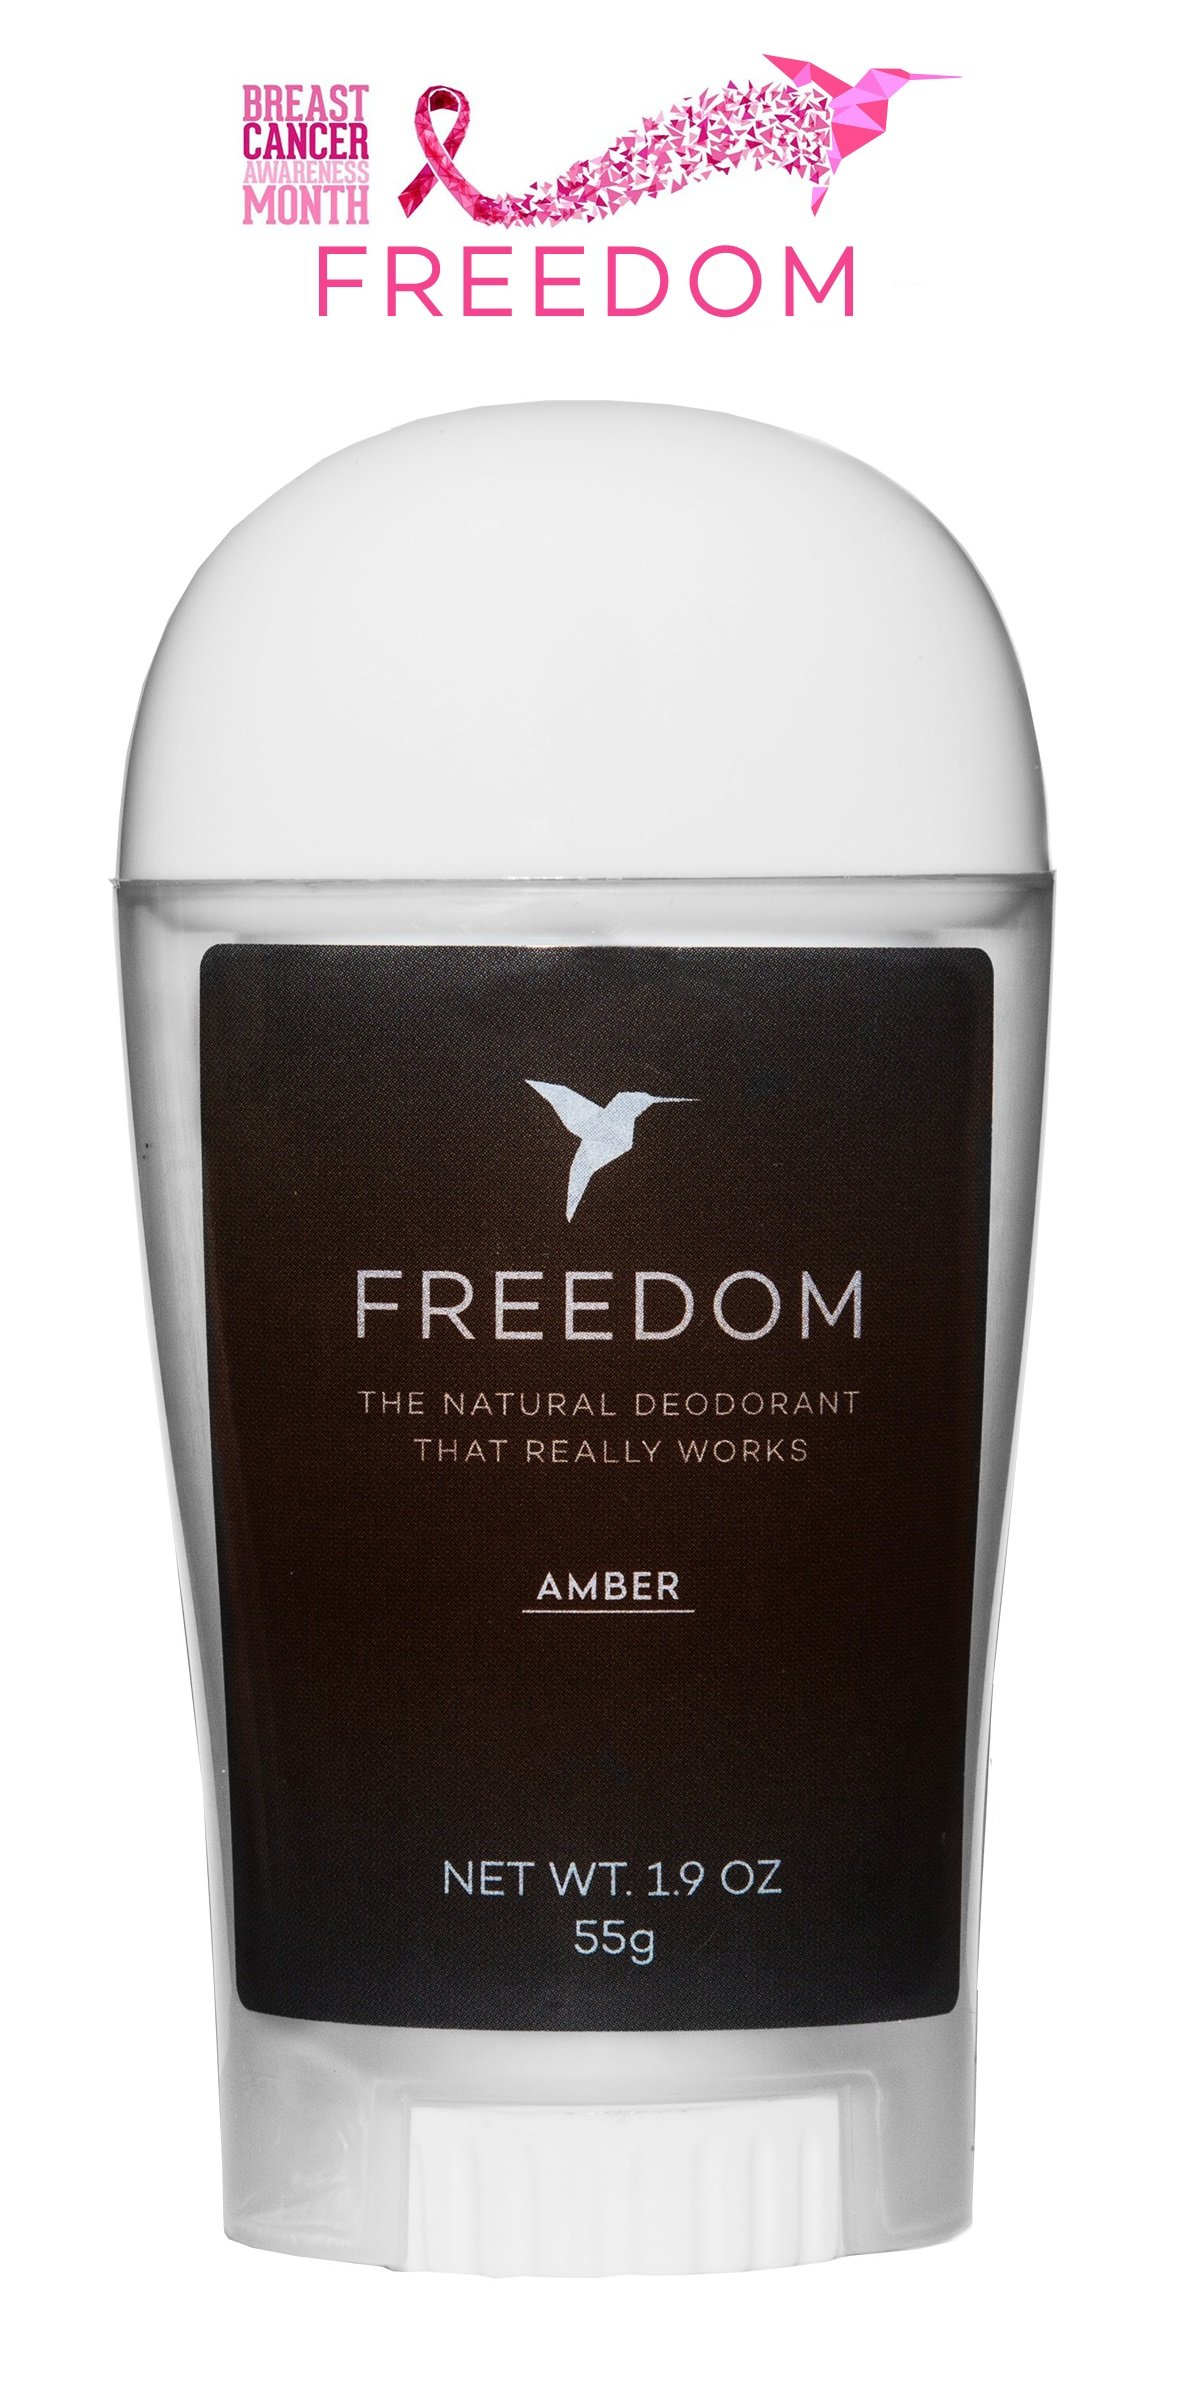 Freedom All Natural Deodorant Aluminum Free Odor Protection Tested & Loved by Cancer Survivors, Busy Execs, Military Personnel, Athletes, Healthy Moms & Kids - Amber 1.9oz